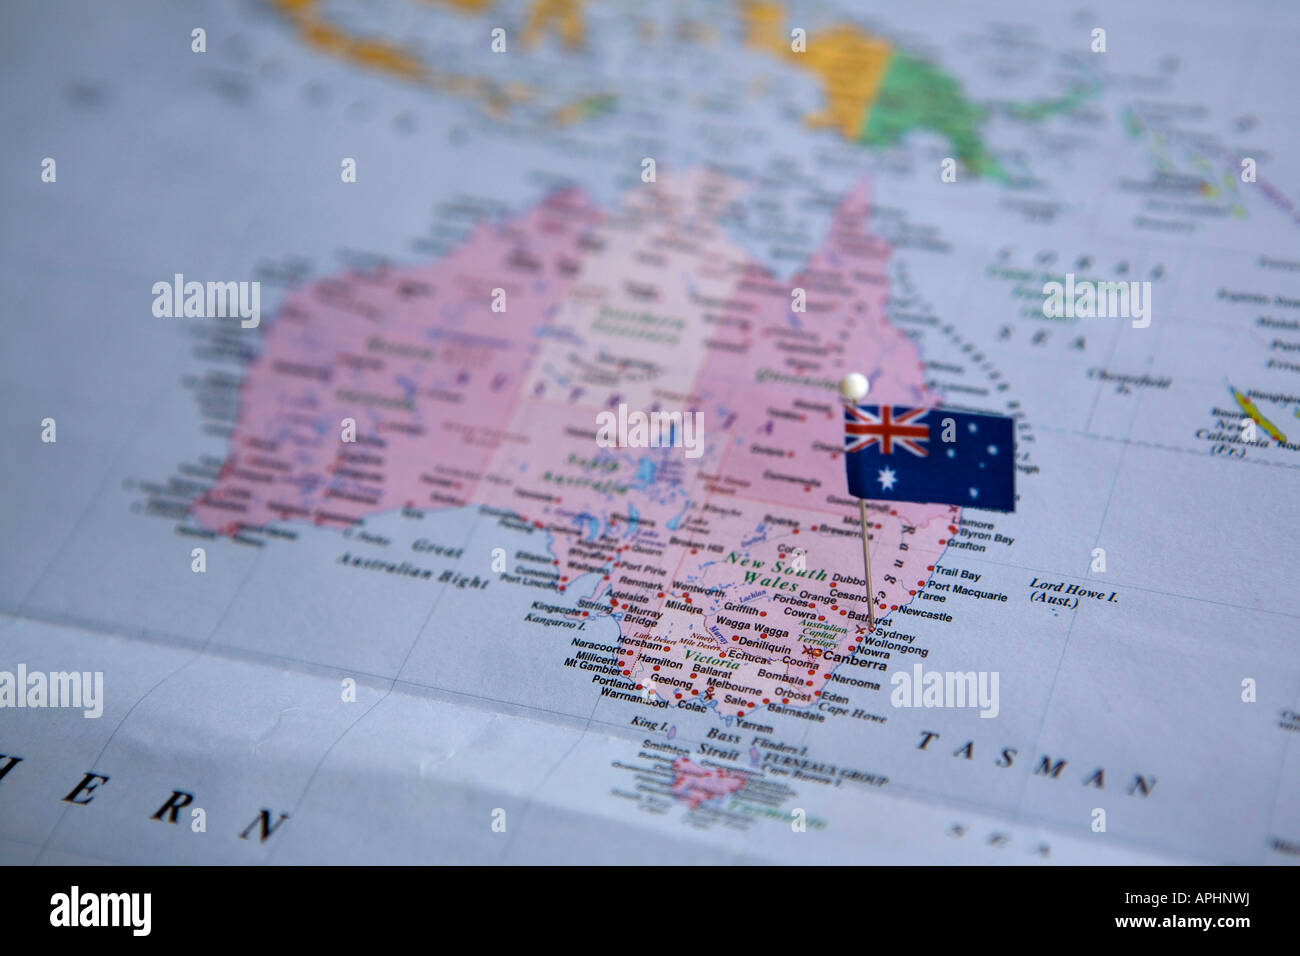 Flag Pin Placed on World Map in Sydney Australia Stock Photo     Flag Pin Placed on World Map in Sydney Australia